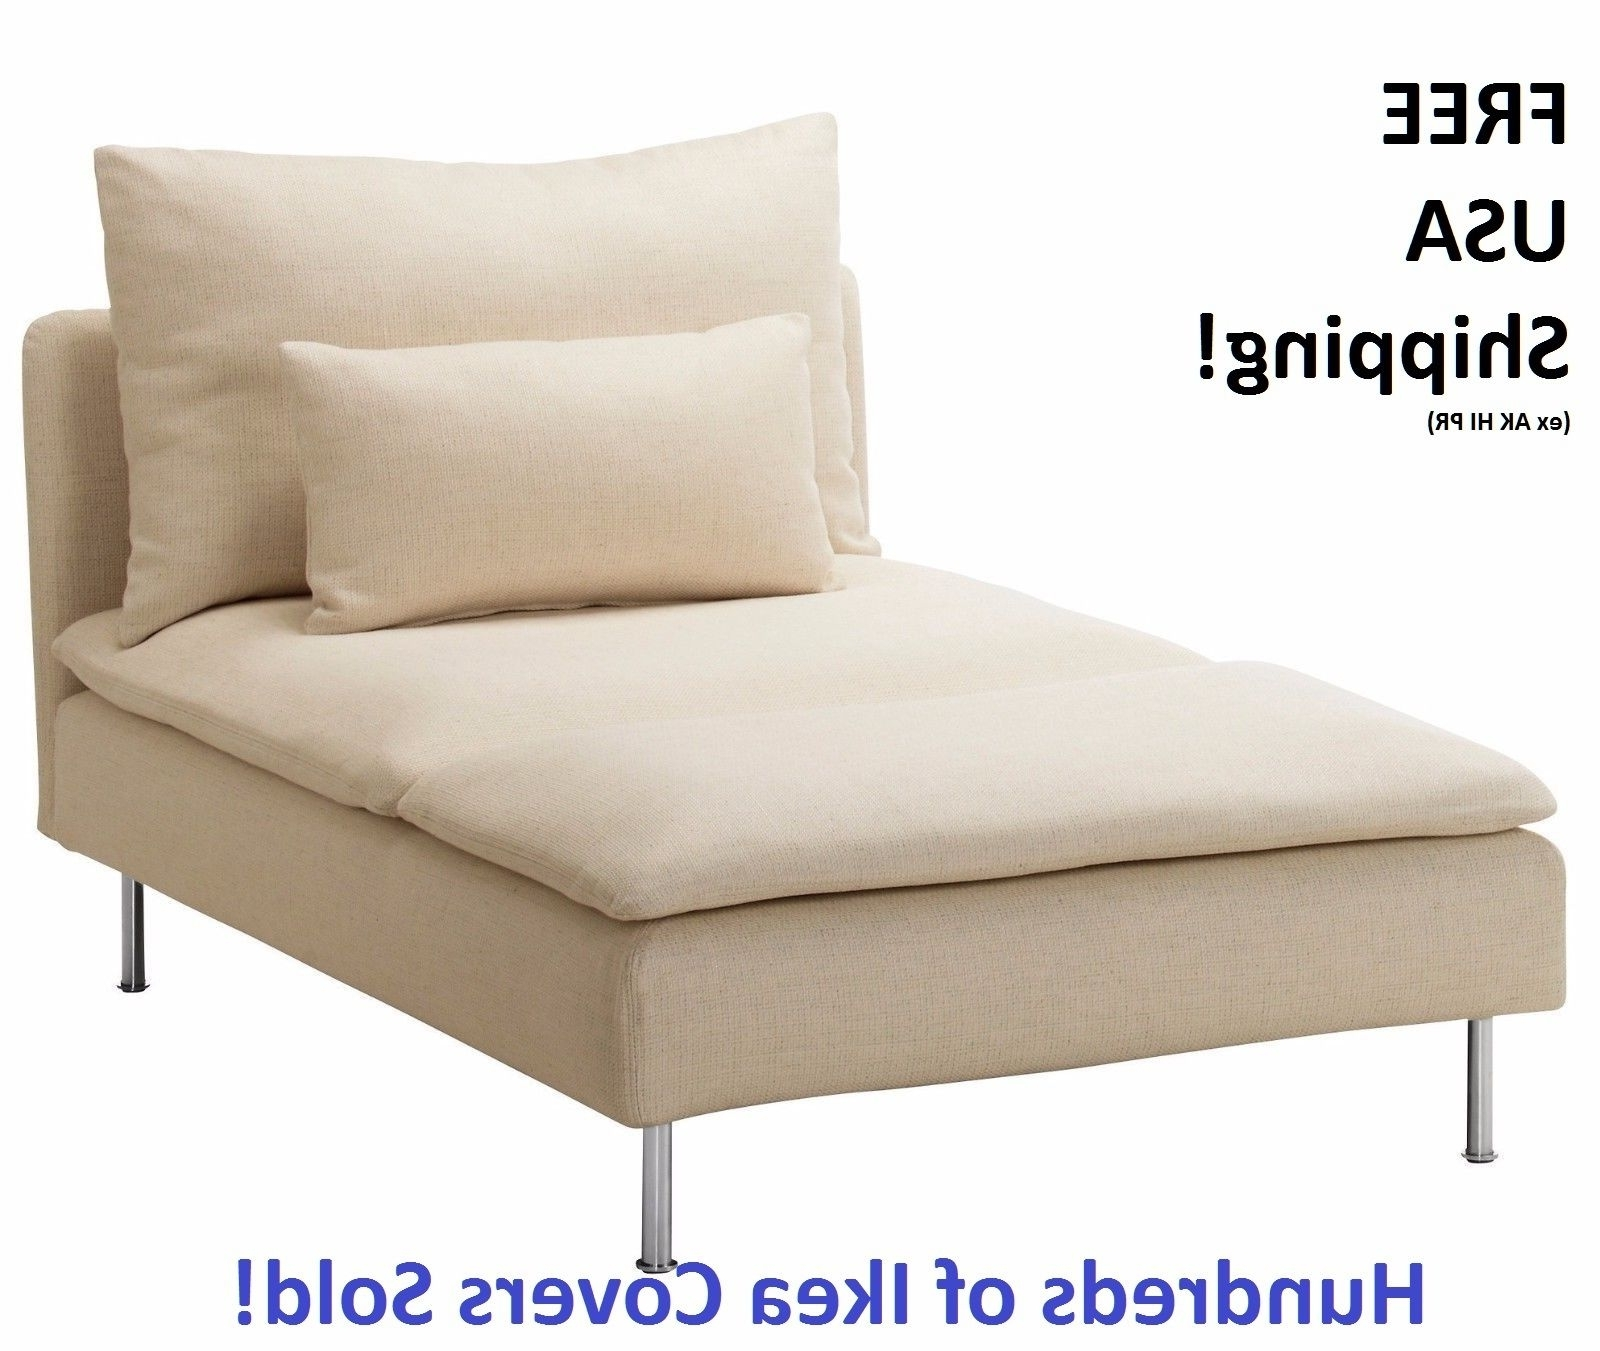 Ebay With Popular Slipcovesr For Chaise Lounge (View 3 of 15)